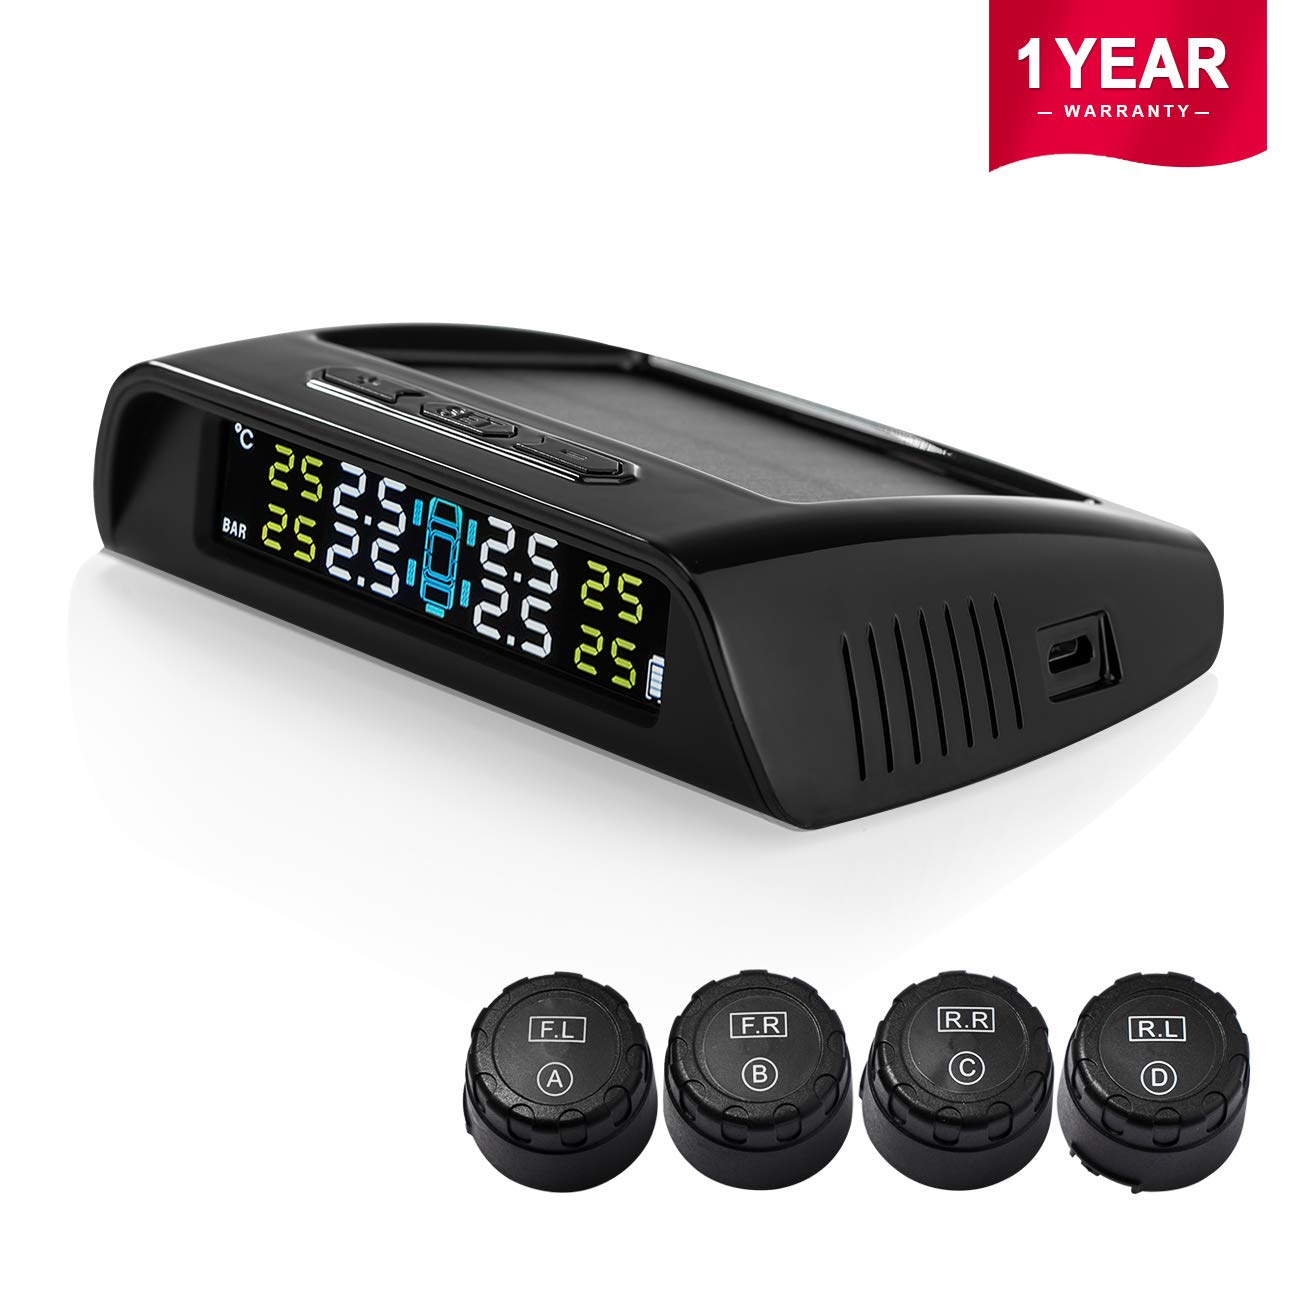 Favoto TPMS Tyre Pressure Monitoring System 22-87 Psi Solar Powered Car Real-time Wireless Auto Alarm System with 4 External Sensors(with 6 CR1632 batteries) 1 Year's Garantee